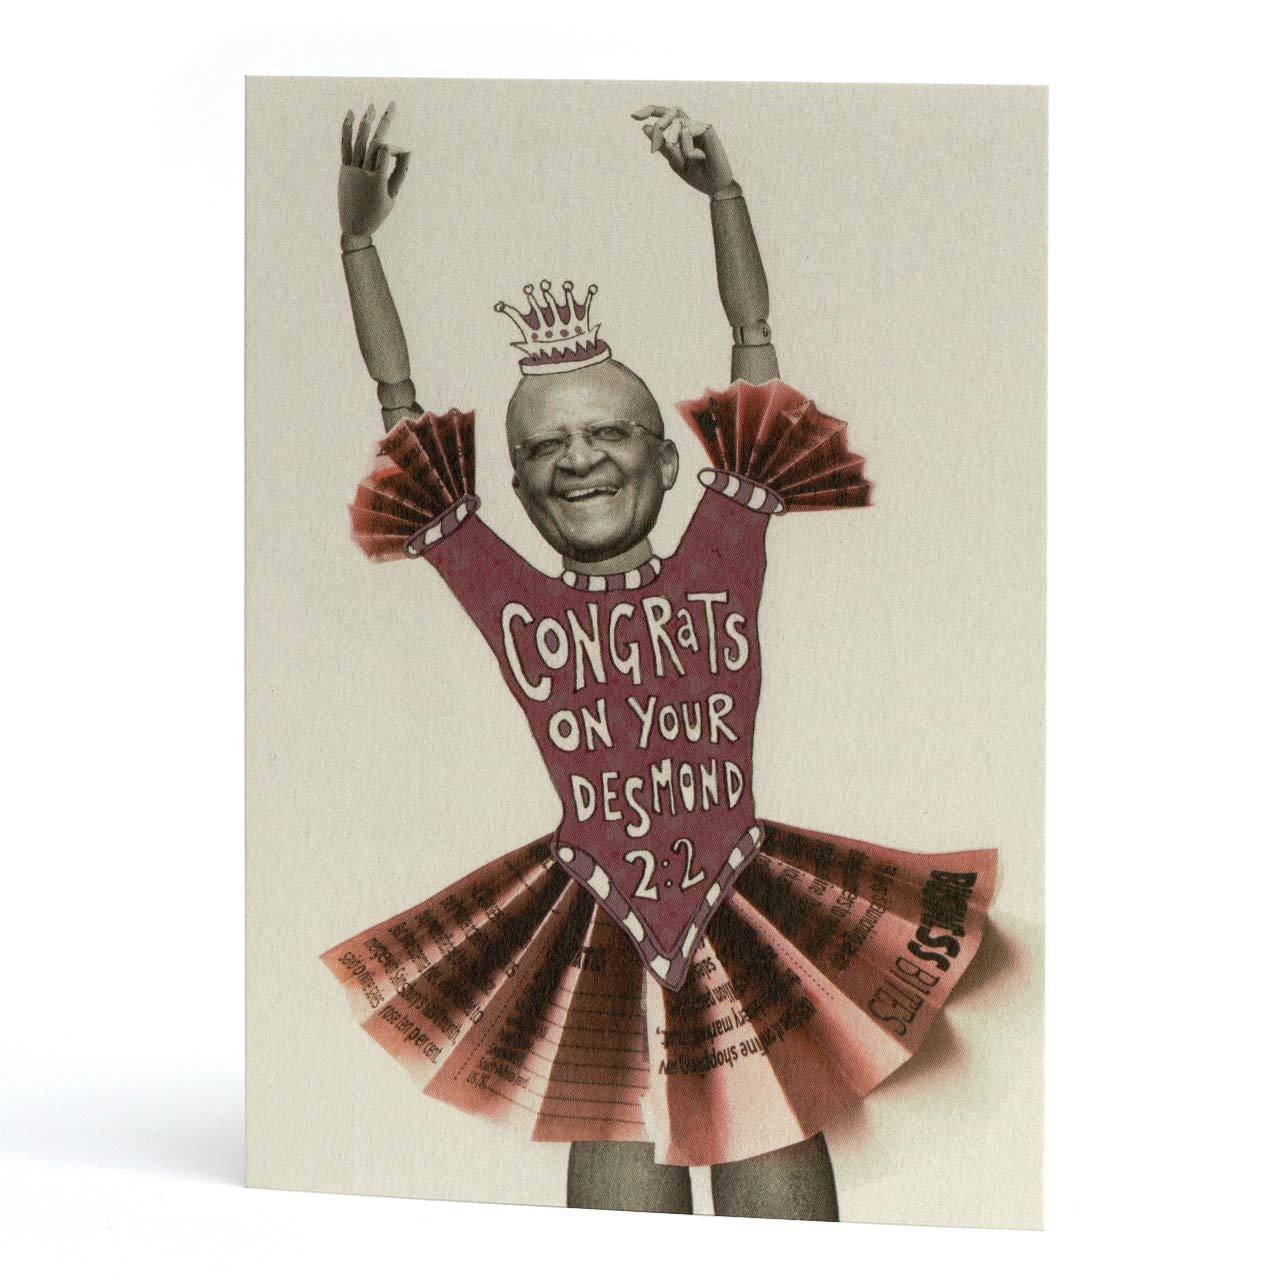 Congrats on Your Desmond 2:2 Greeting Card